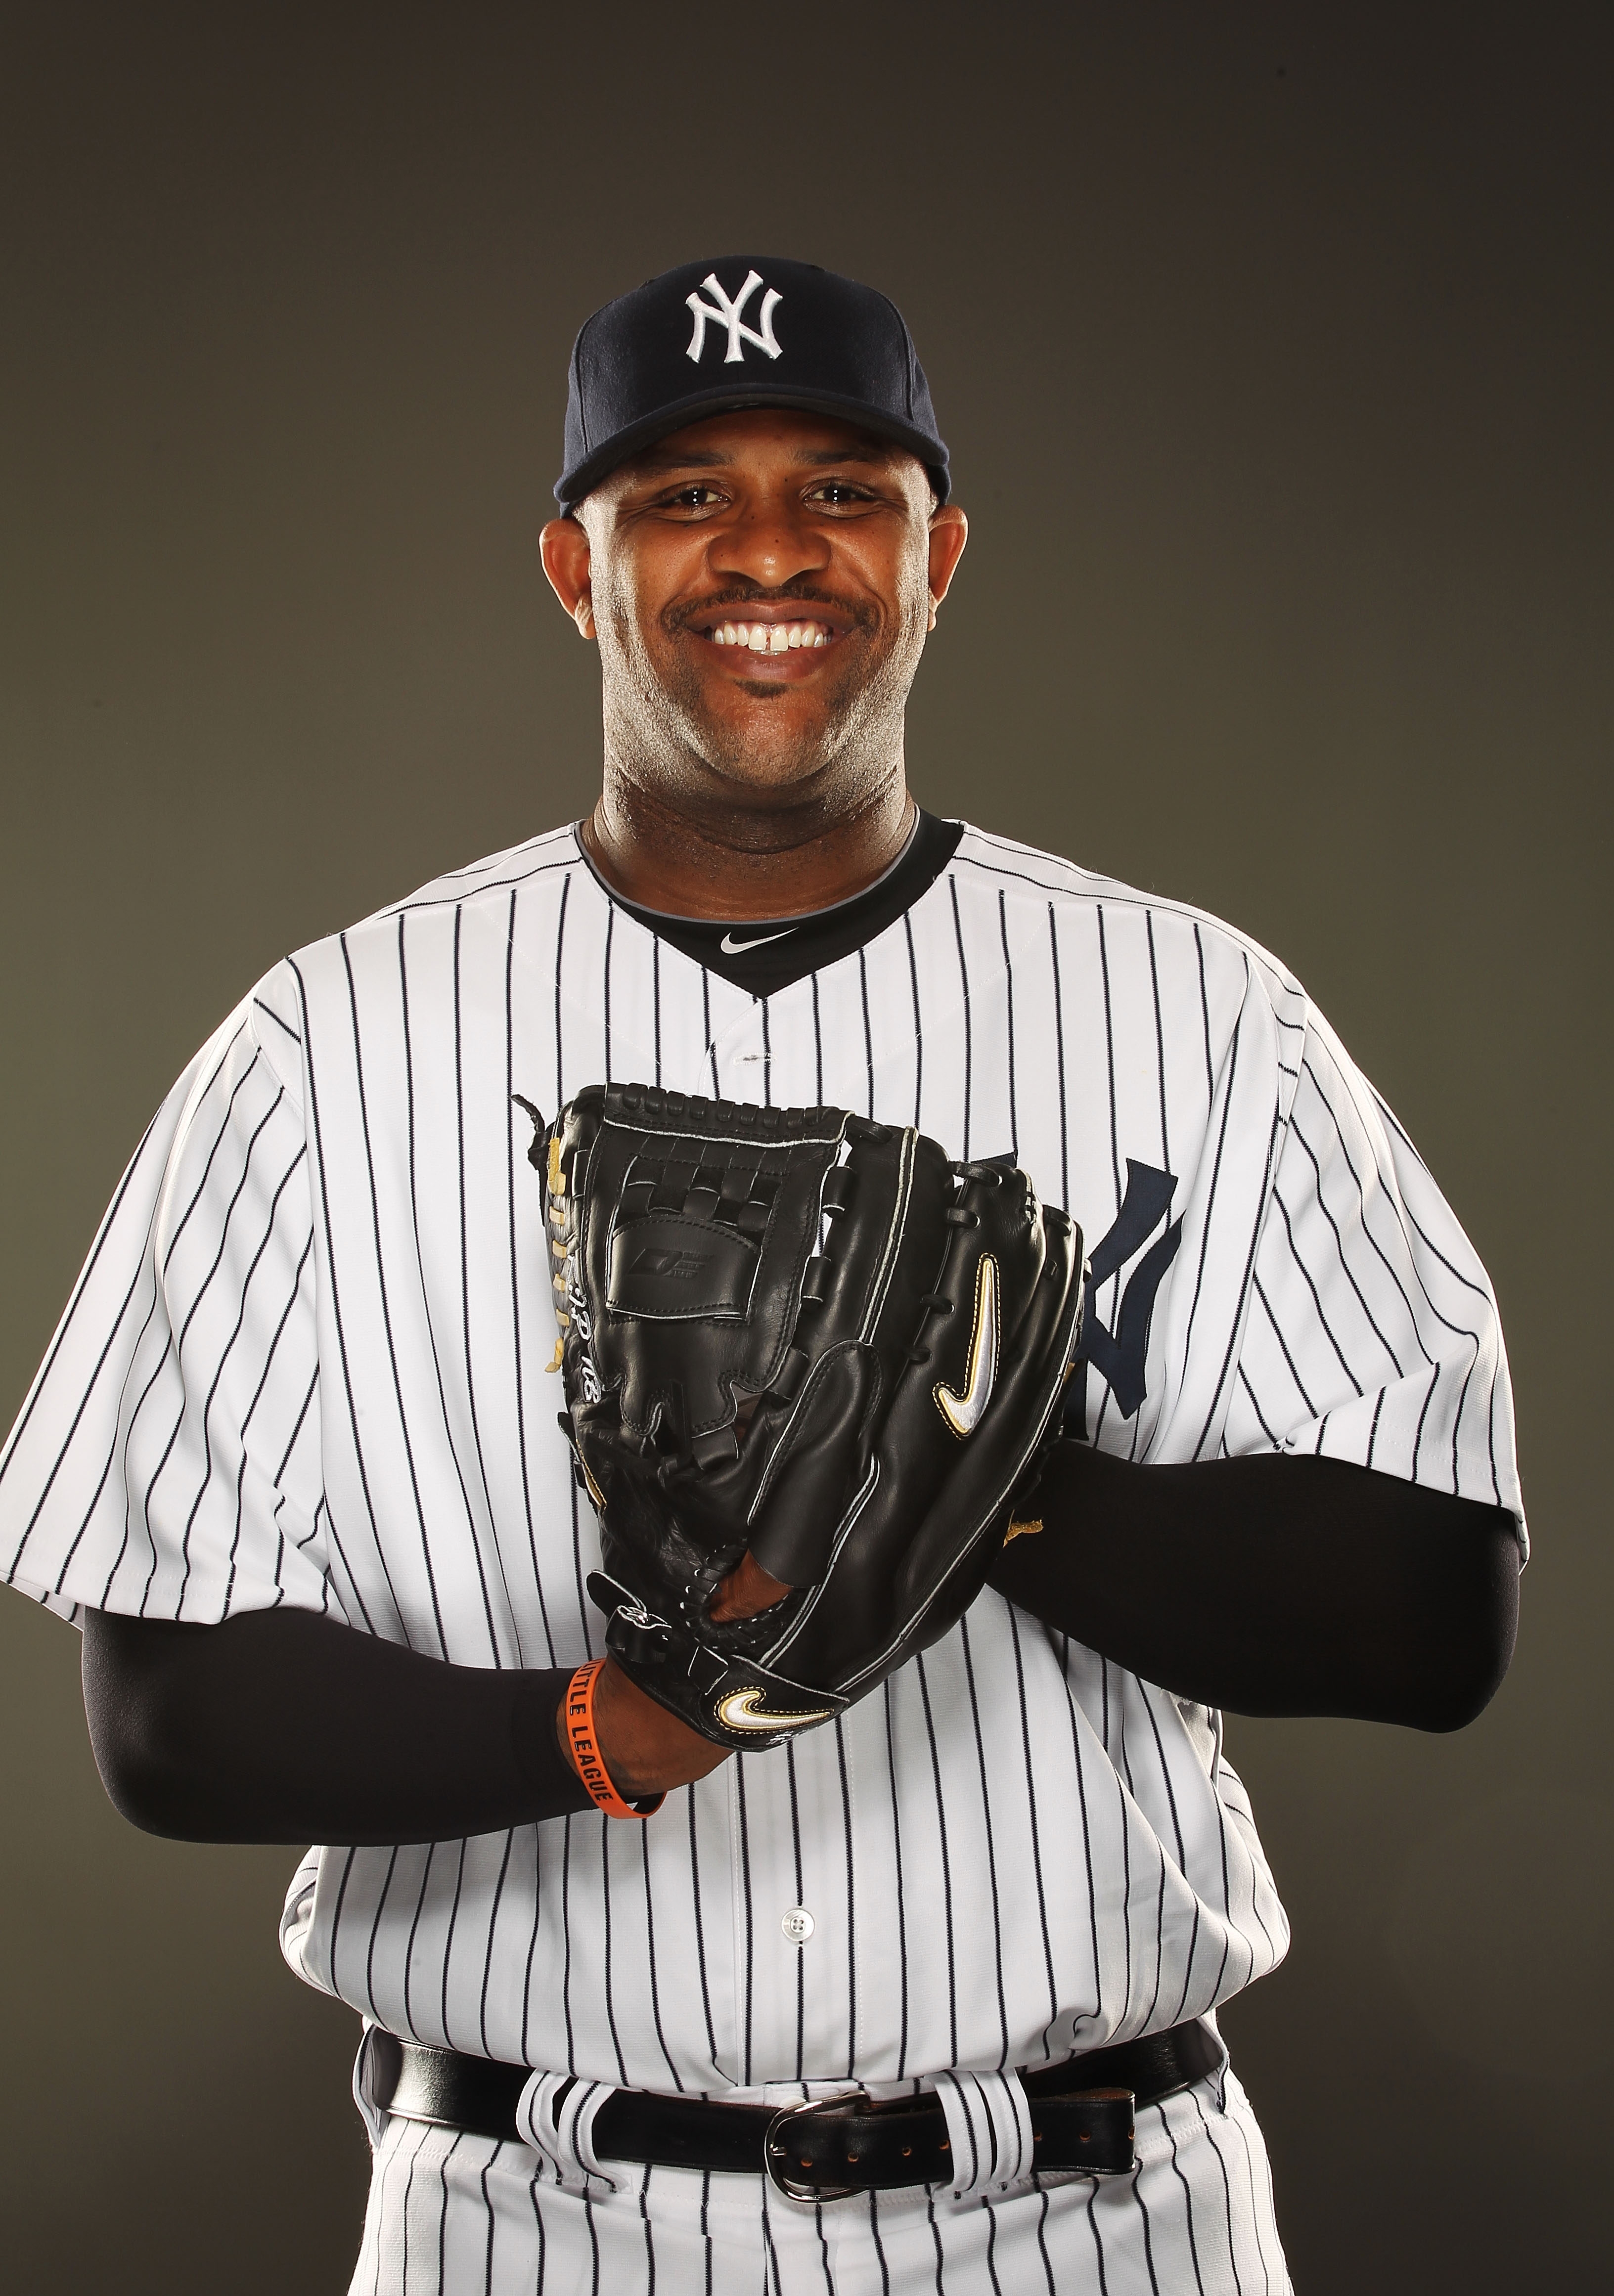 TAMPA, FL - FEBRUARY 23:  CC Sabathia #52 of the New York Yankees poses for a portrait on Photo Day at George M. Steinbrenner Field on February 23, 2011 in Tampa, Florida.  (Photo by Al Bello/Getty Images)